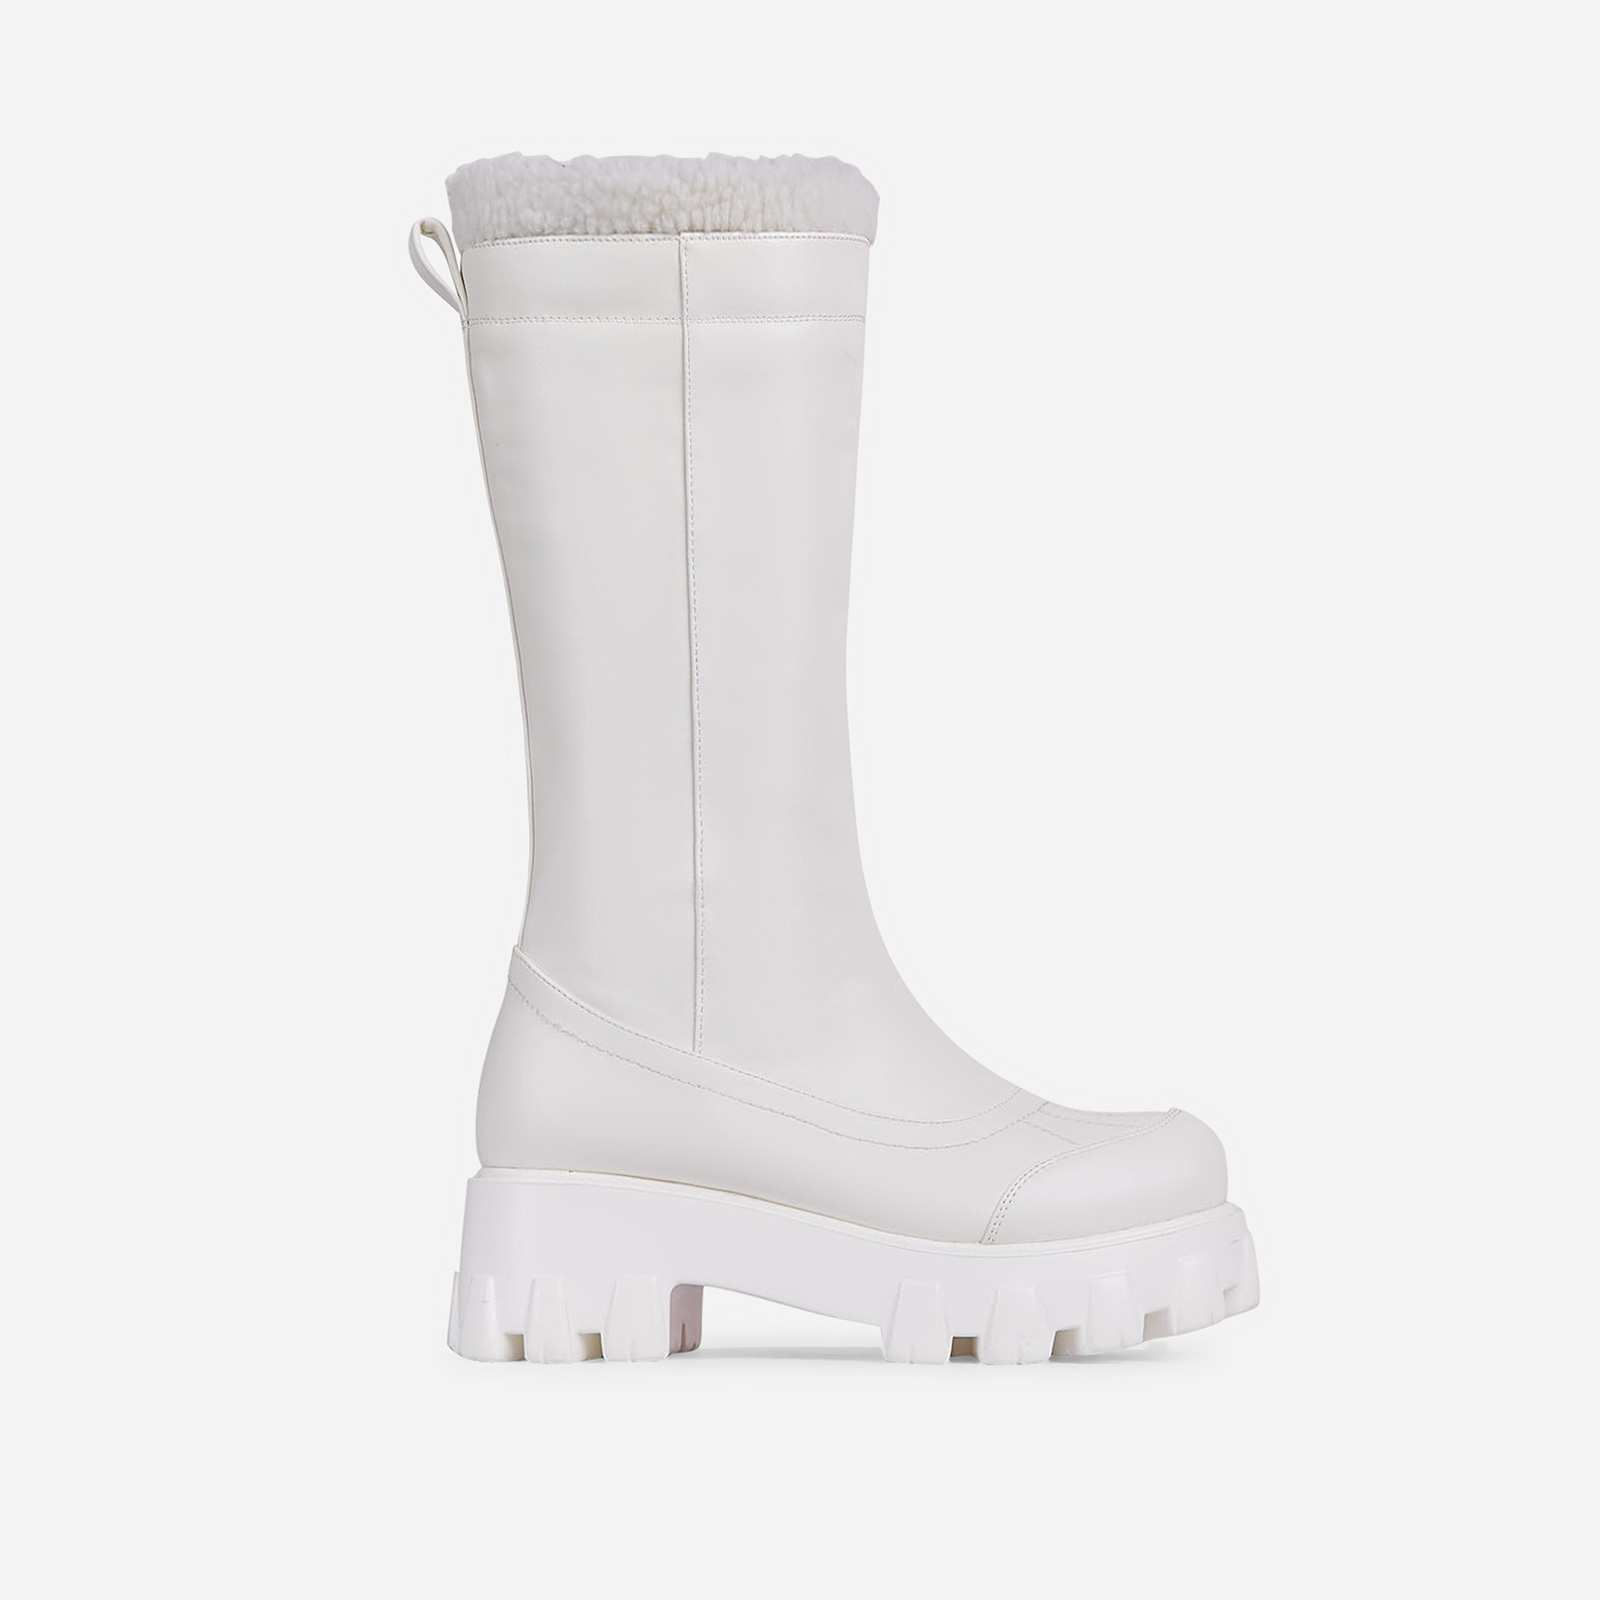 Run-The-World Faux Fur Trim Chunky Sole Knee High Long Wellington Boot In White Faux Leather